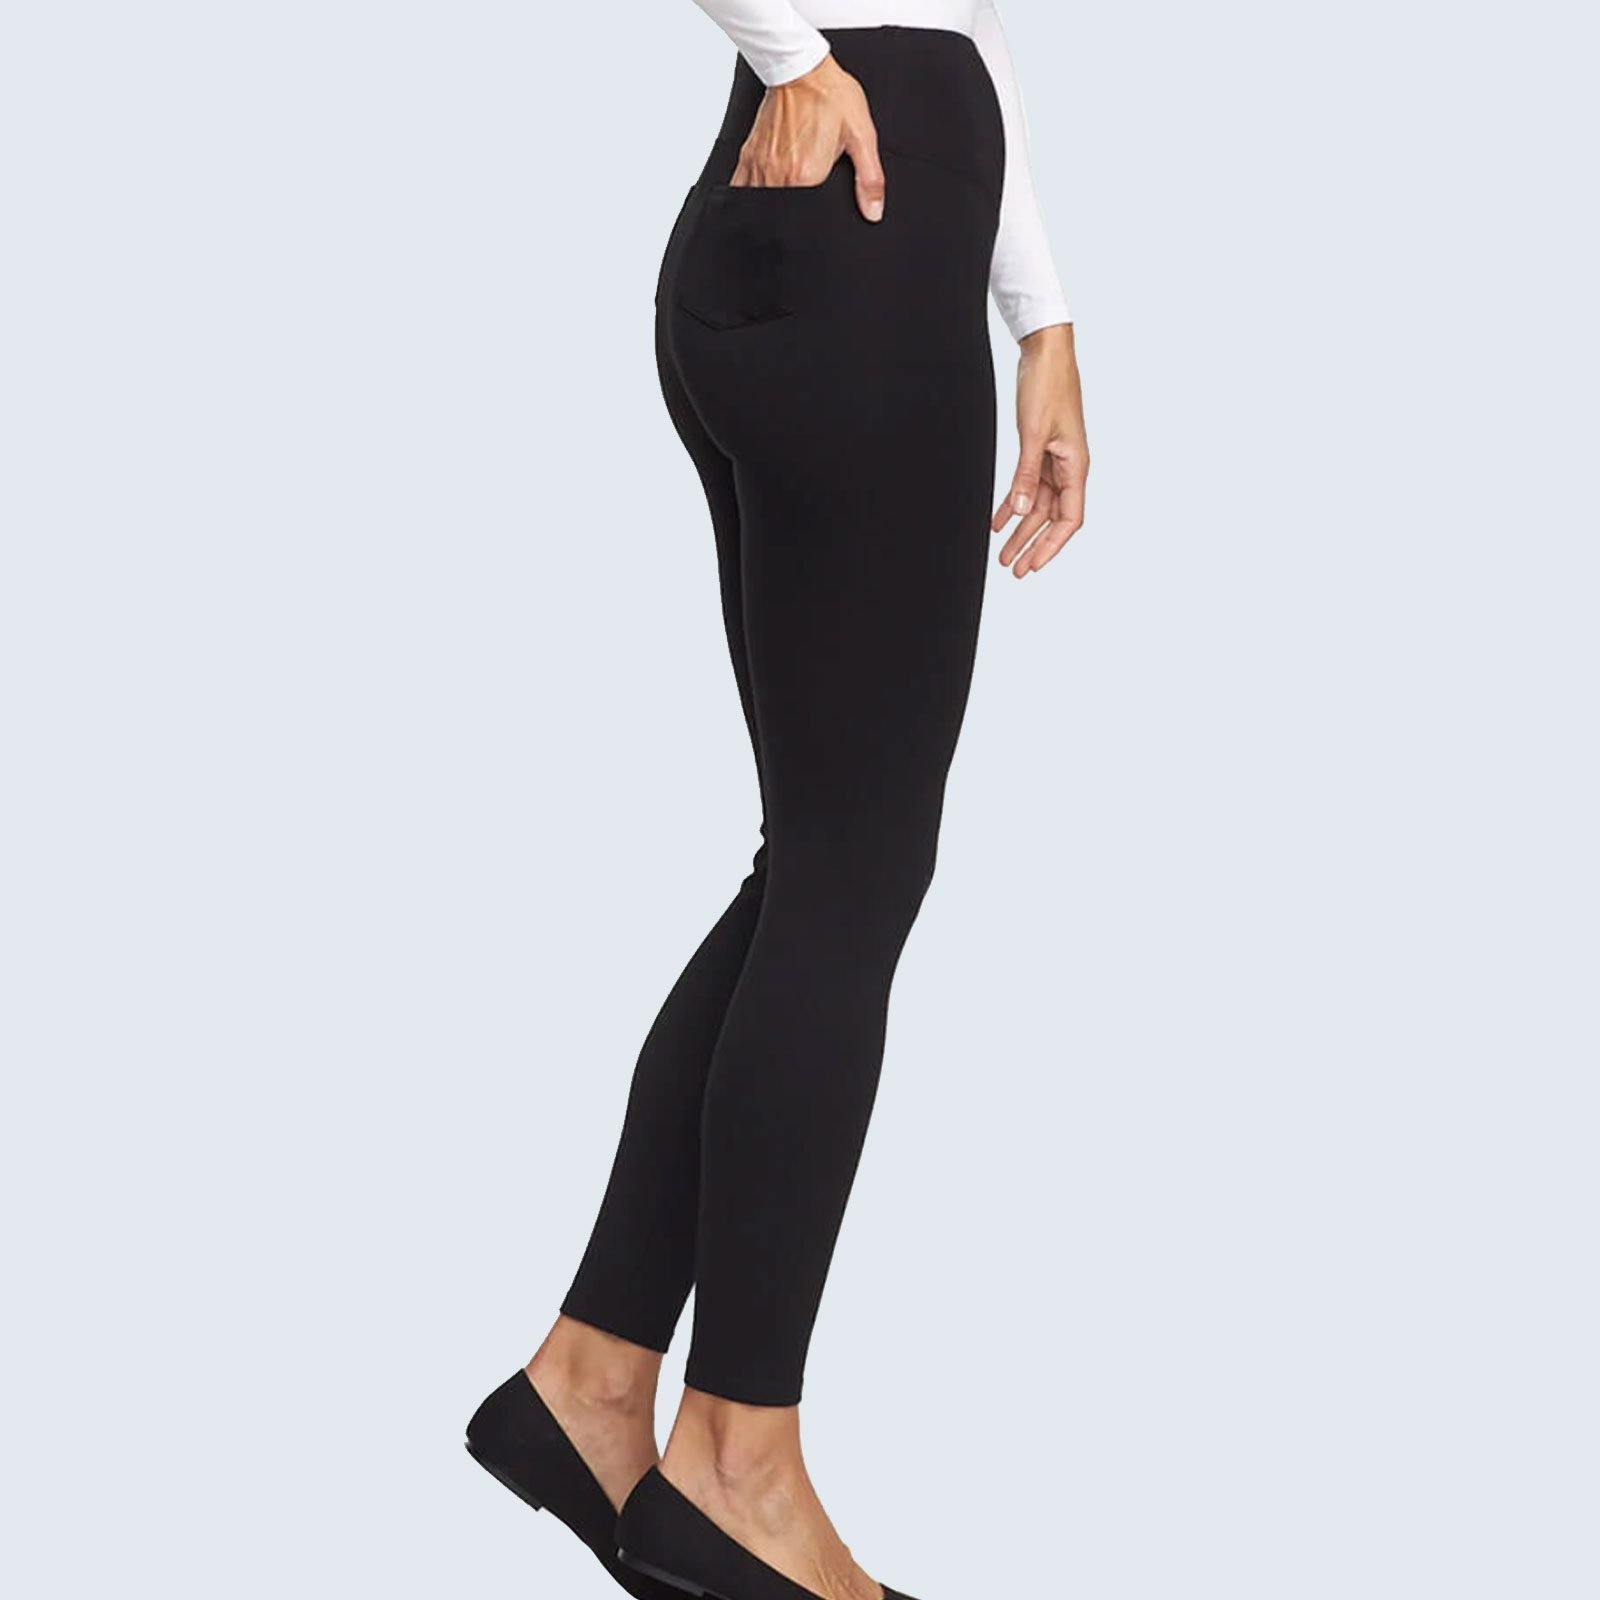 Best Butt-Lifting Leggings that look like Dress Pants